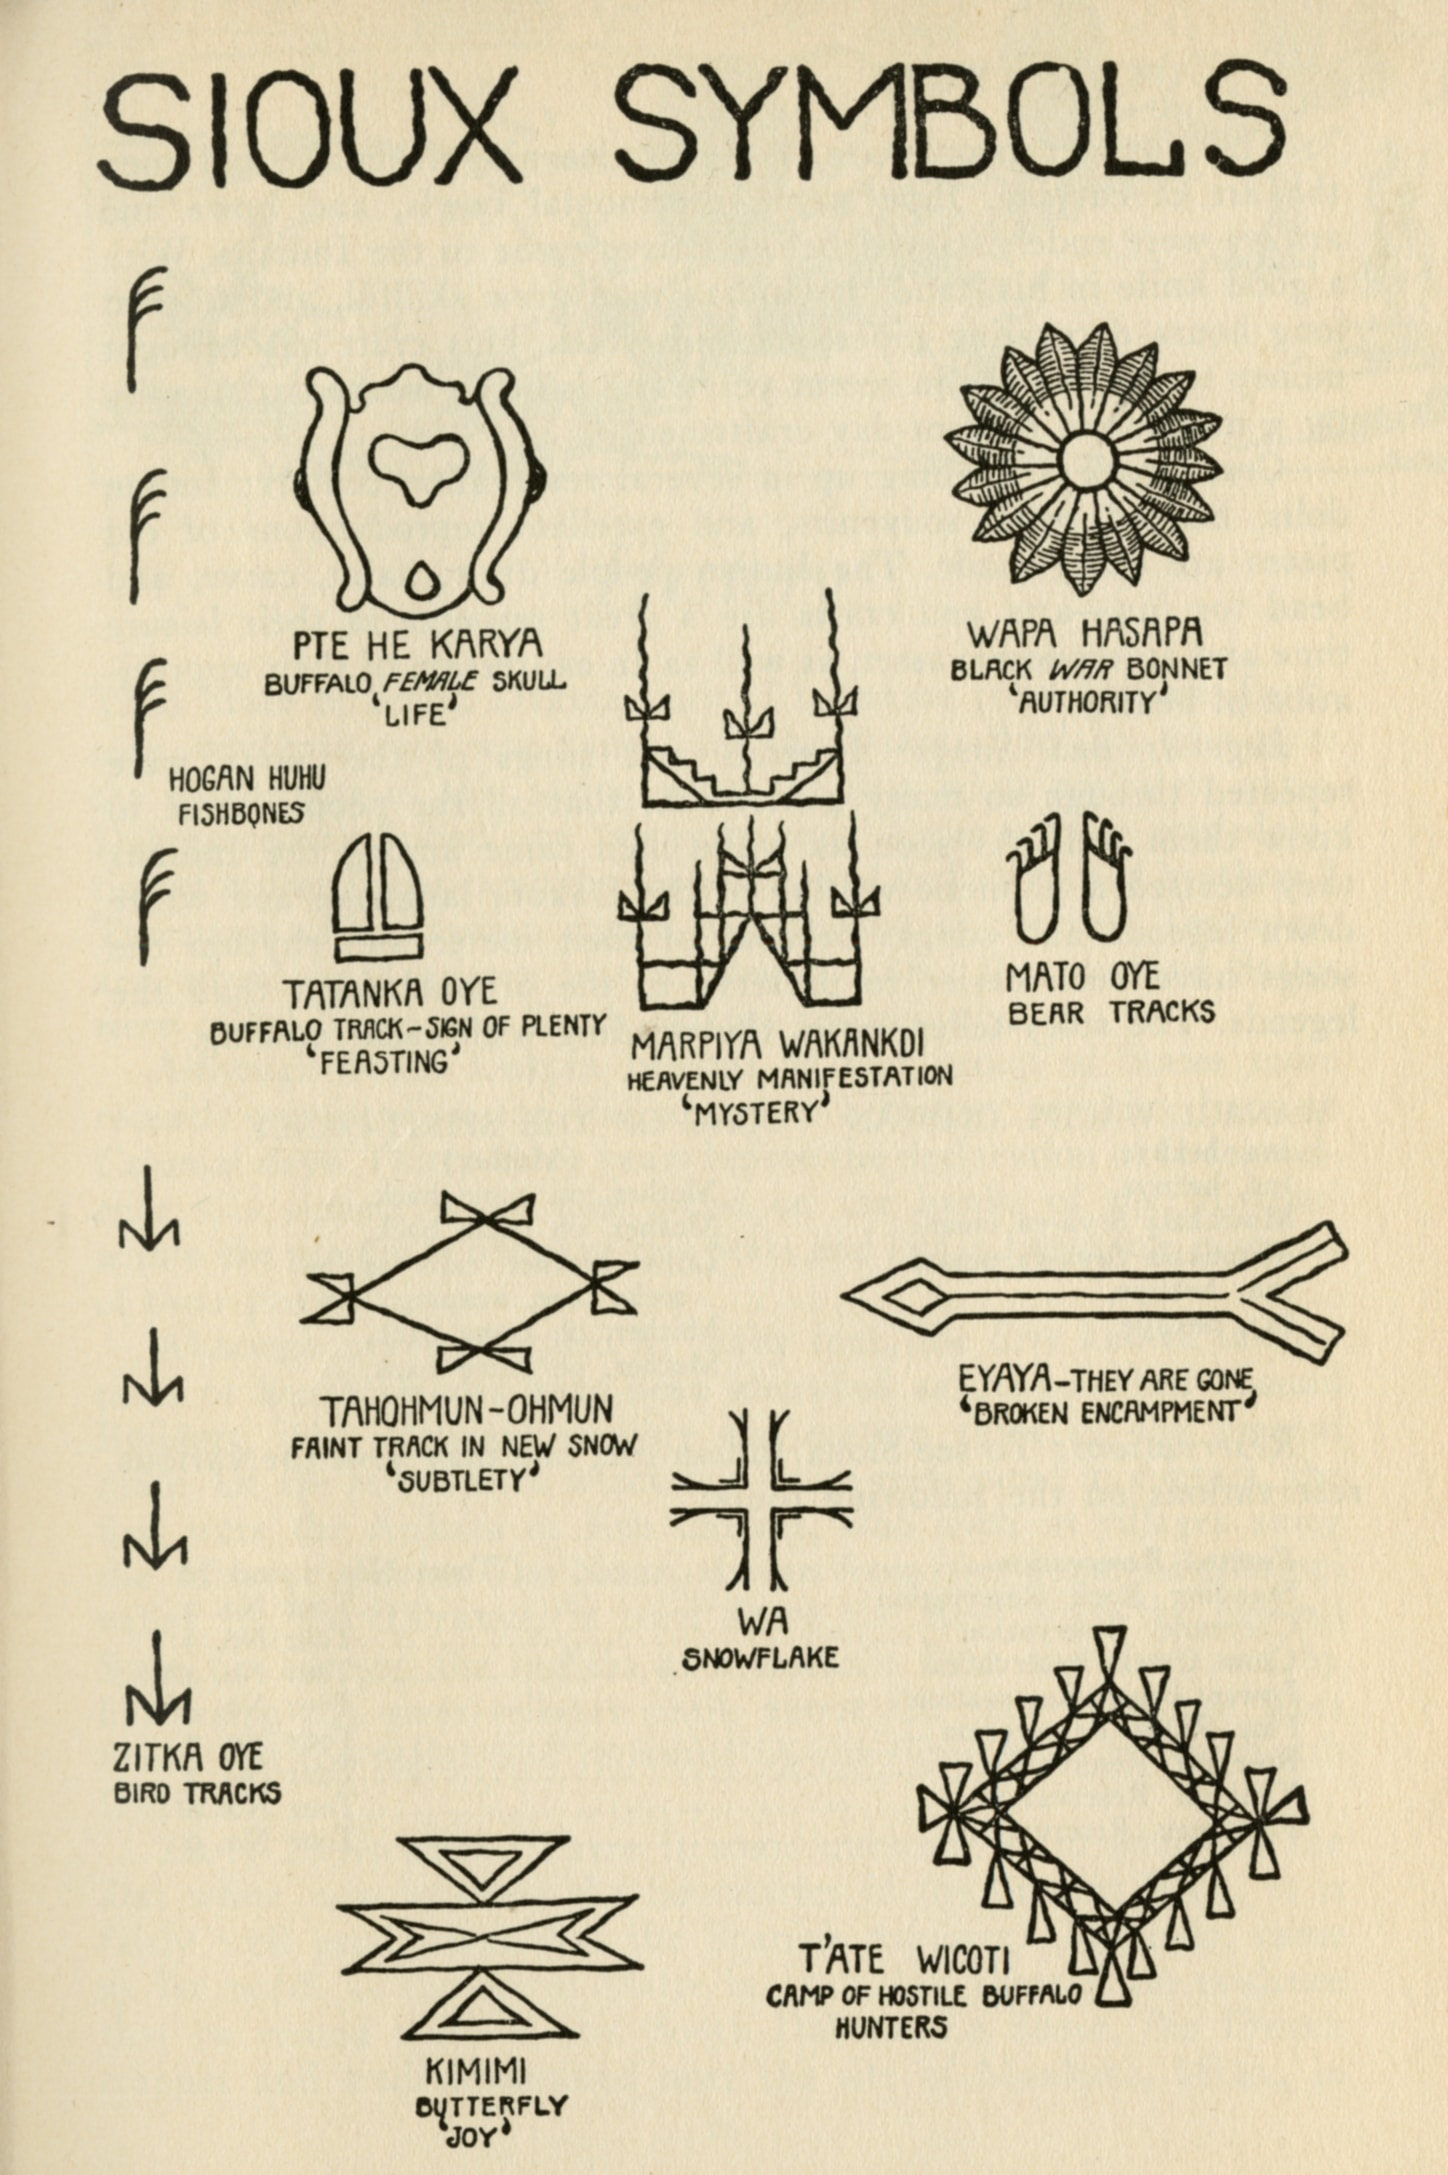 Common indian symbols image collections symbol and sign ideas sioux indian symbols and meanings sioux indian symbols and meanings photo5 buycottarizona buycottarizona